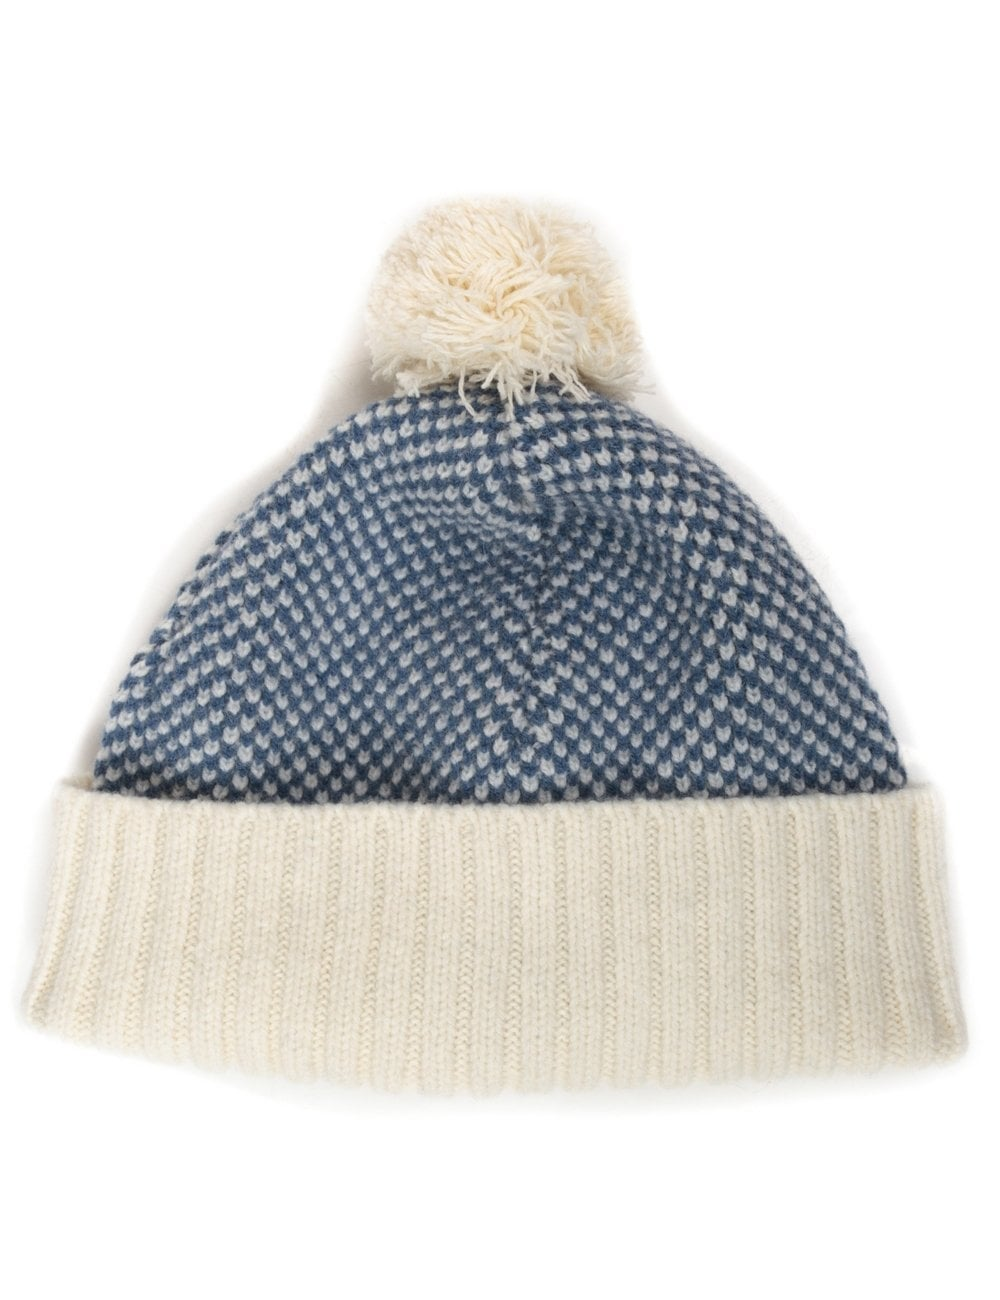 Universal Works Bobble Hat - Navy - Accessories from Fat Buddha Store UK b5112cfe826